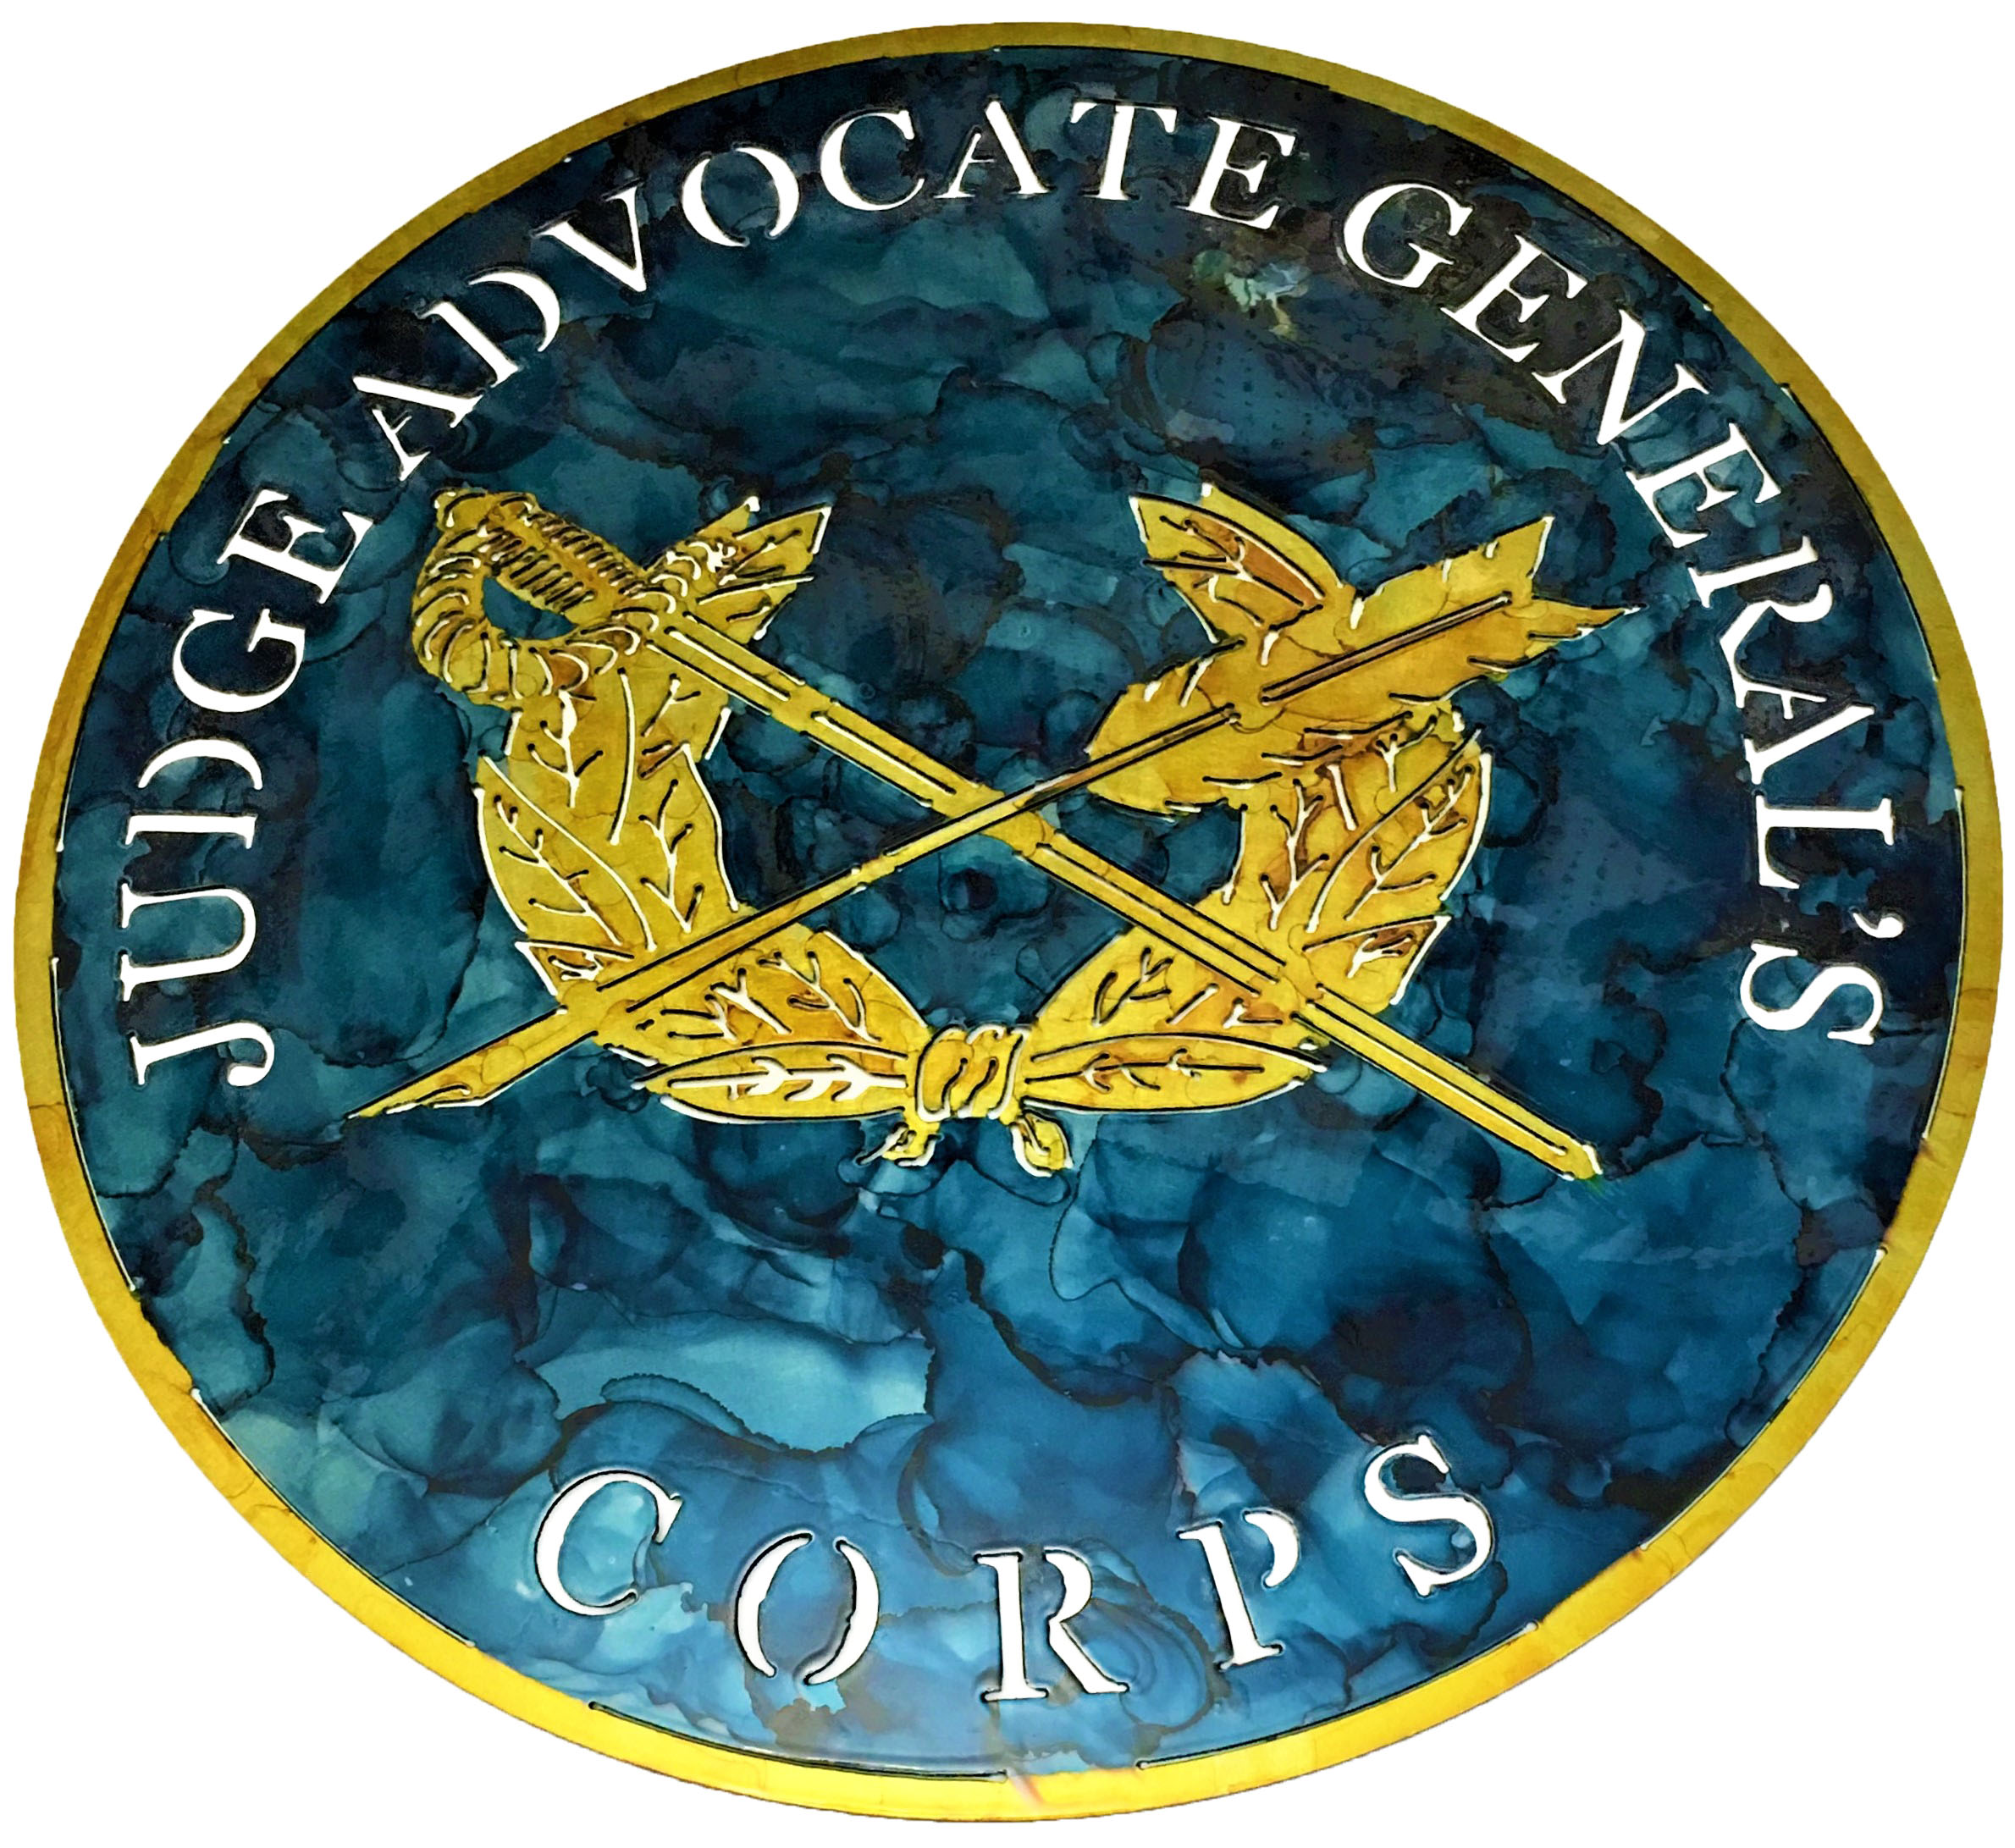 Judge Advocate General's Corp_MetalWork_